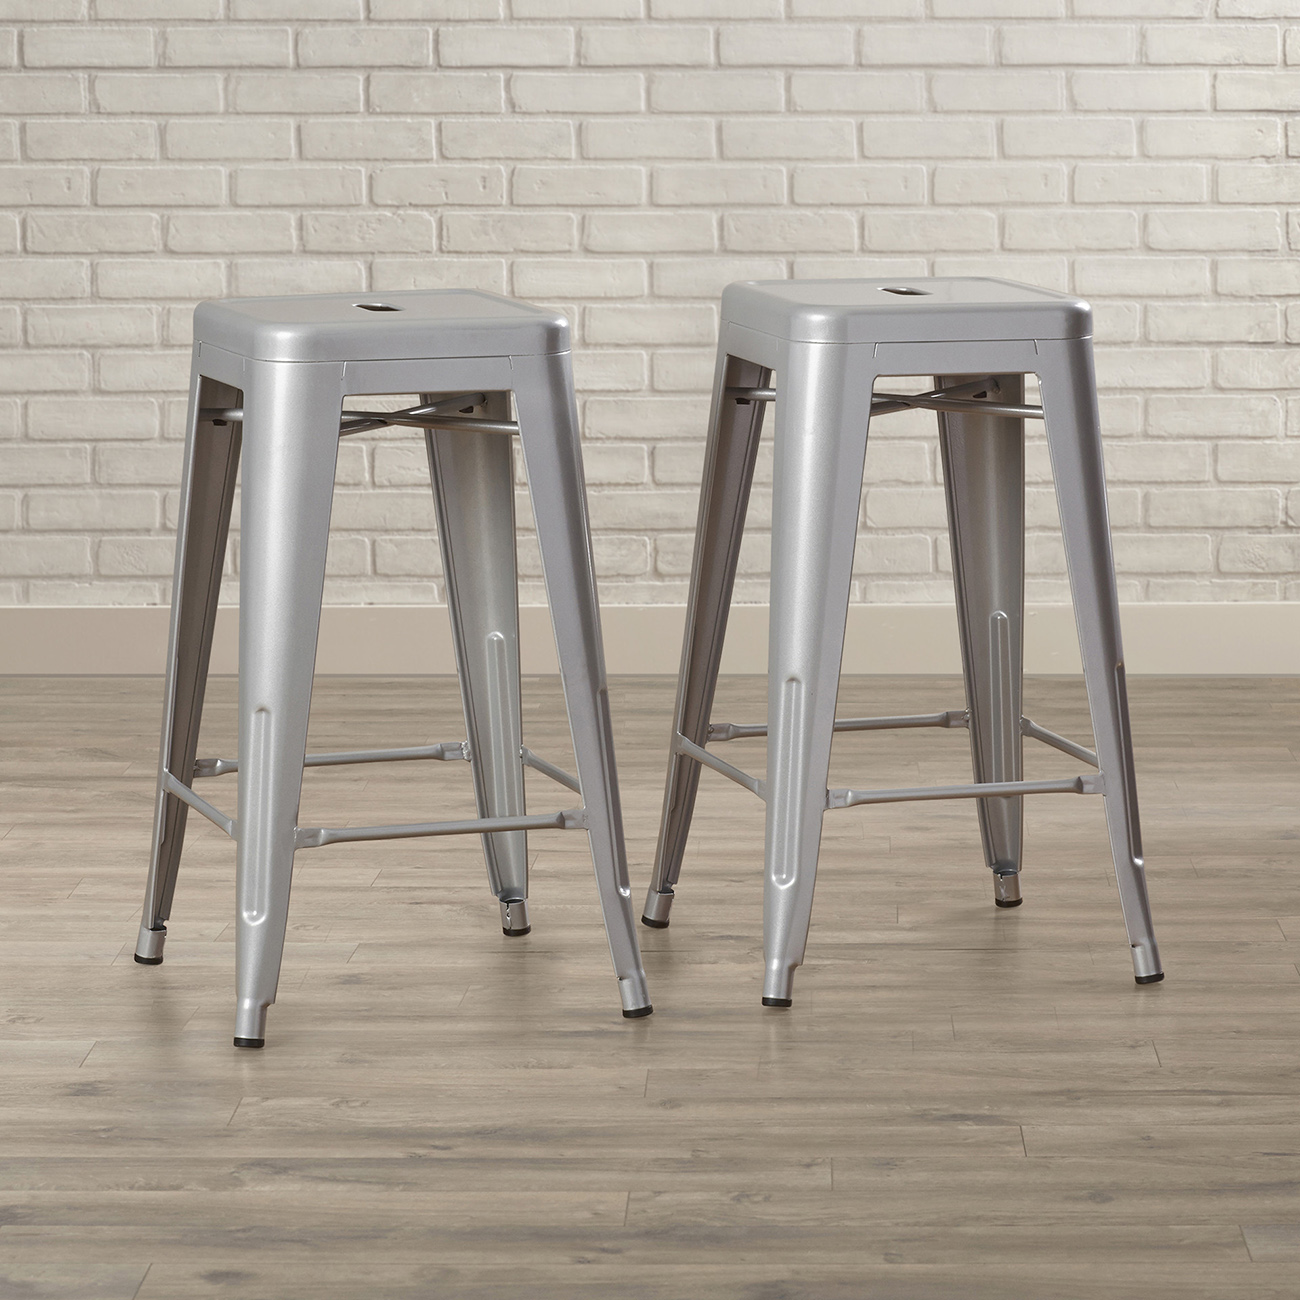 Set of 2 Metal Bar Stool Counter Height Home 24quot 26quot 30  : 014 hg 14084 from www.ebay.com size 1300 x 1300 jpeg 498kB